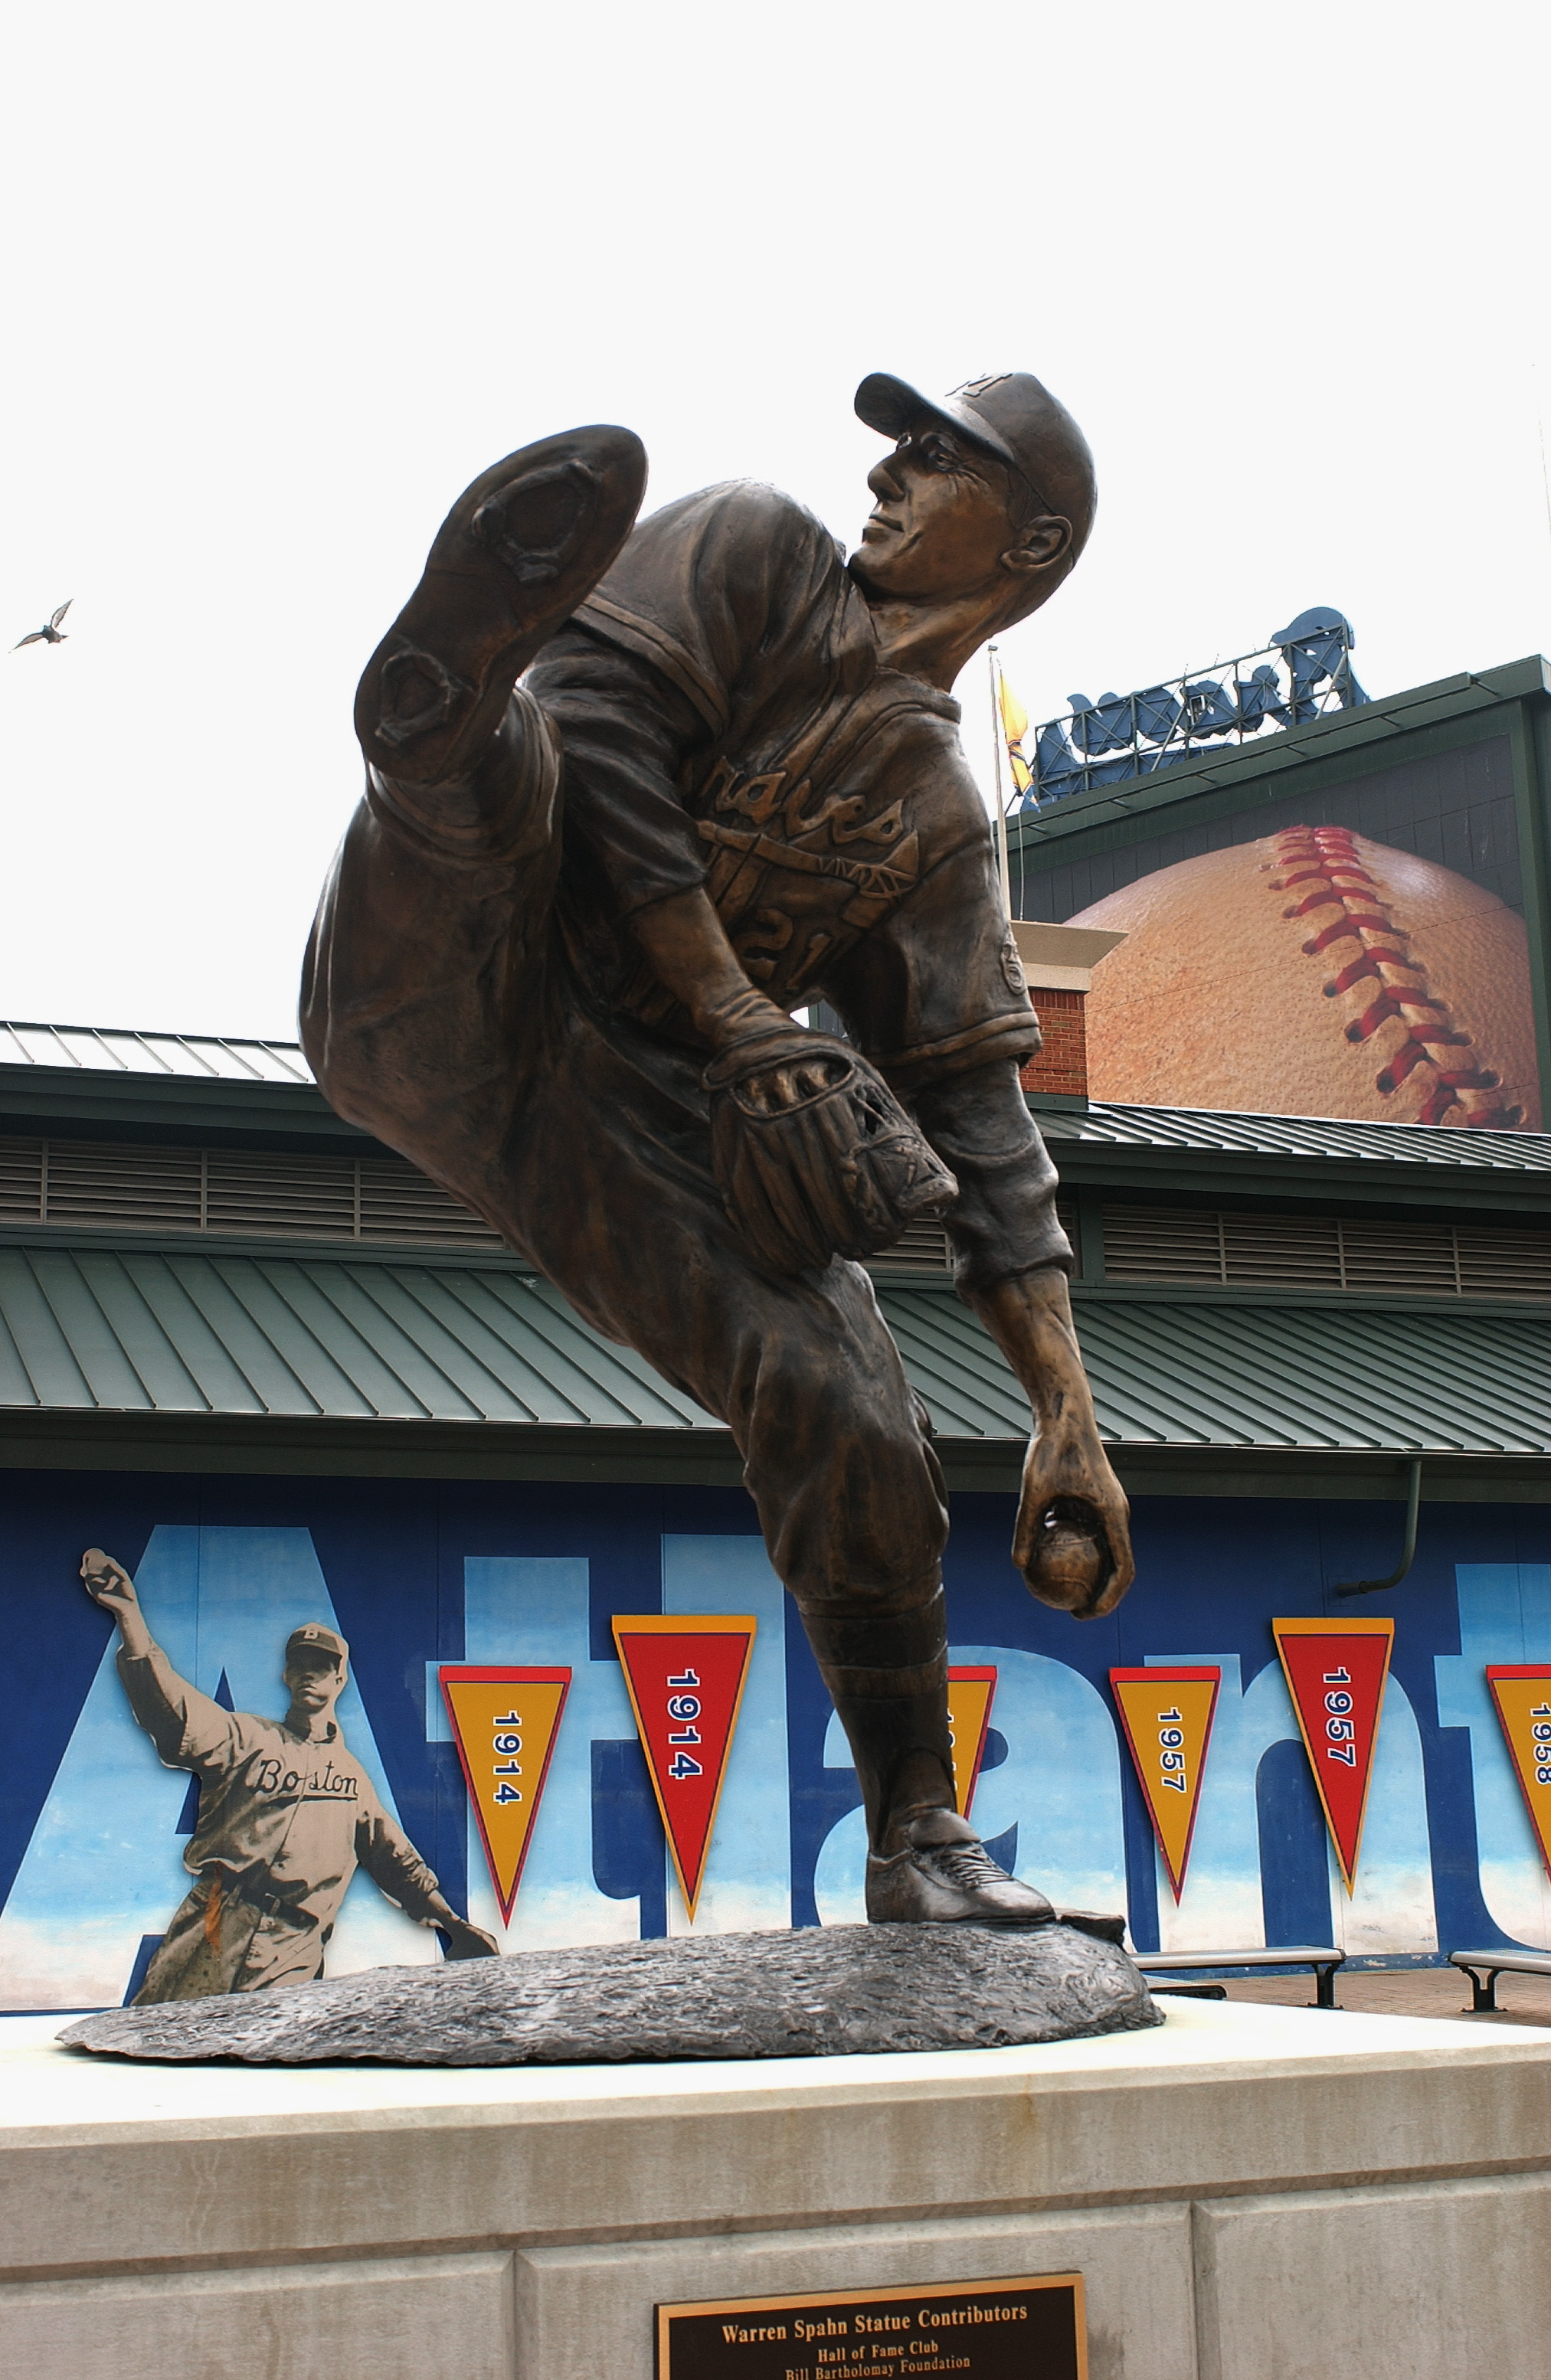 ATLANTA - JULY 26:  At Turner Field, a statue at honors pitcher Warren Spahn #21 and his career with the Braves, on July 26, 2004 in Atlanta, Georgia. (Photo by Scott Cunningham/Getty Images)